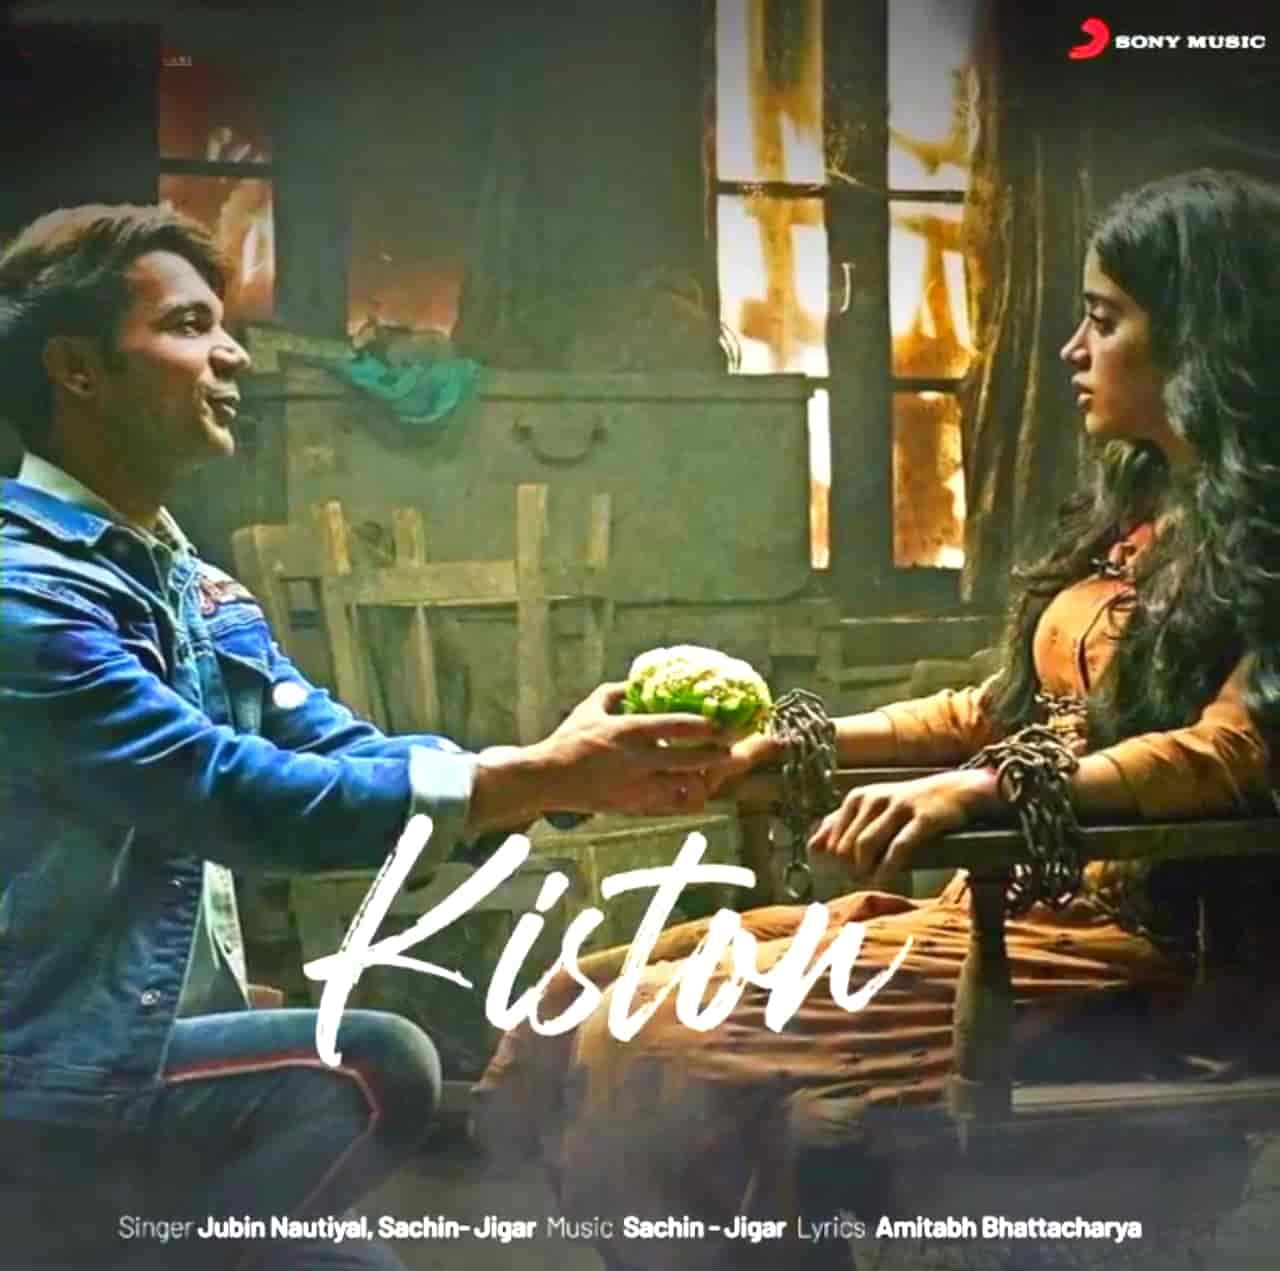 Kiston Hindi Song Lyrics Jubin Nautiyal